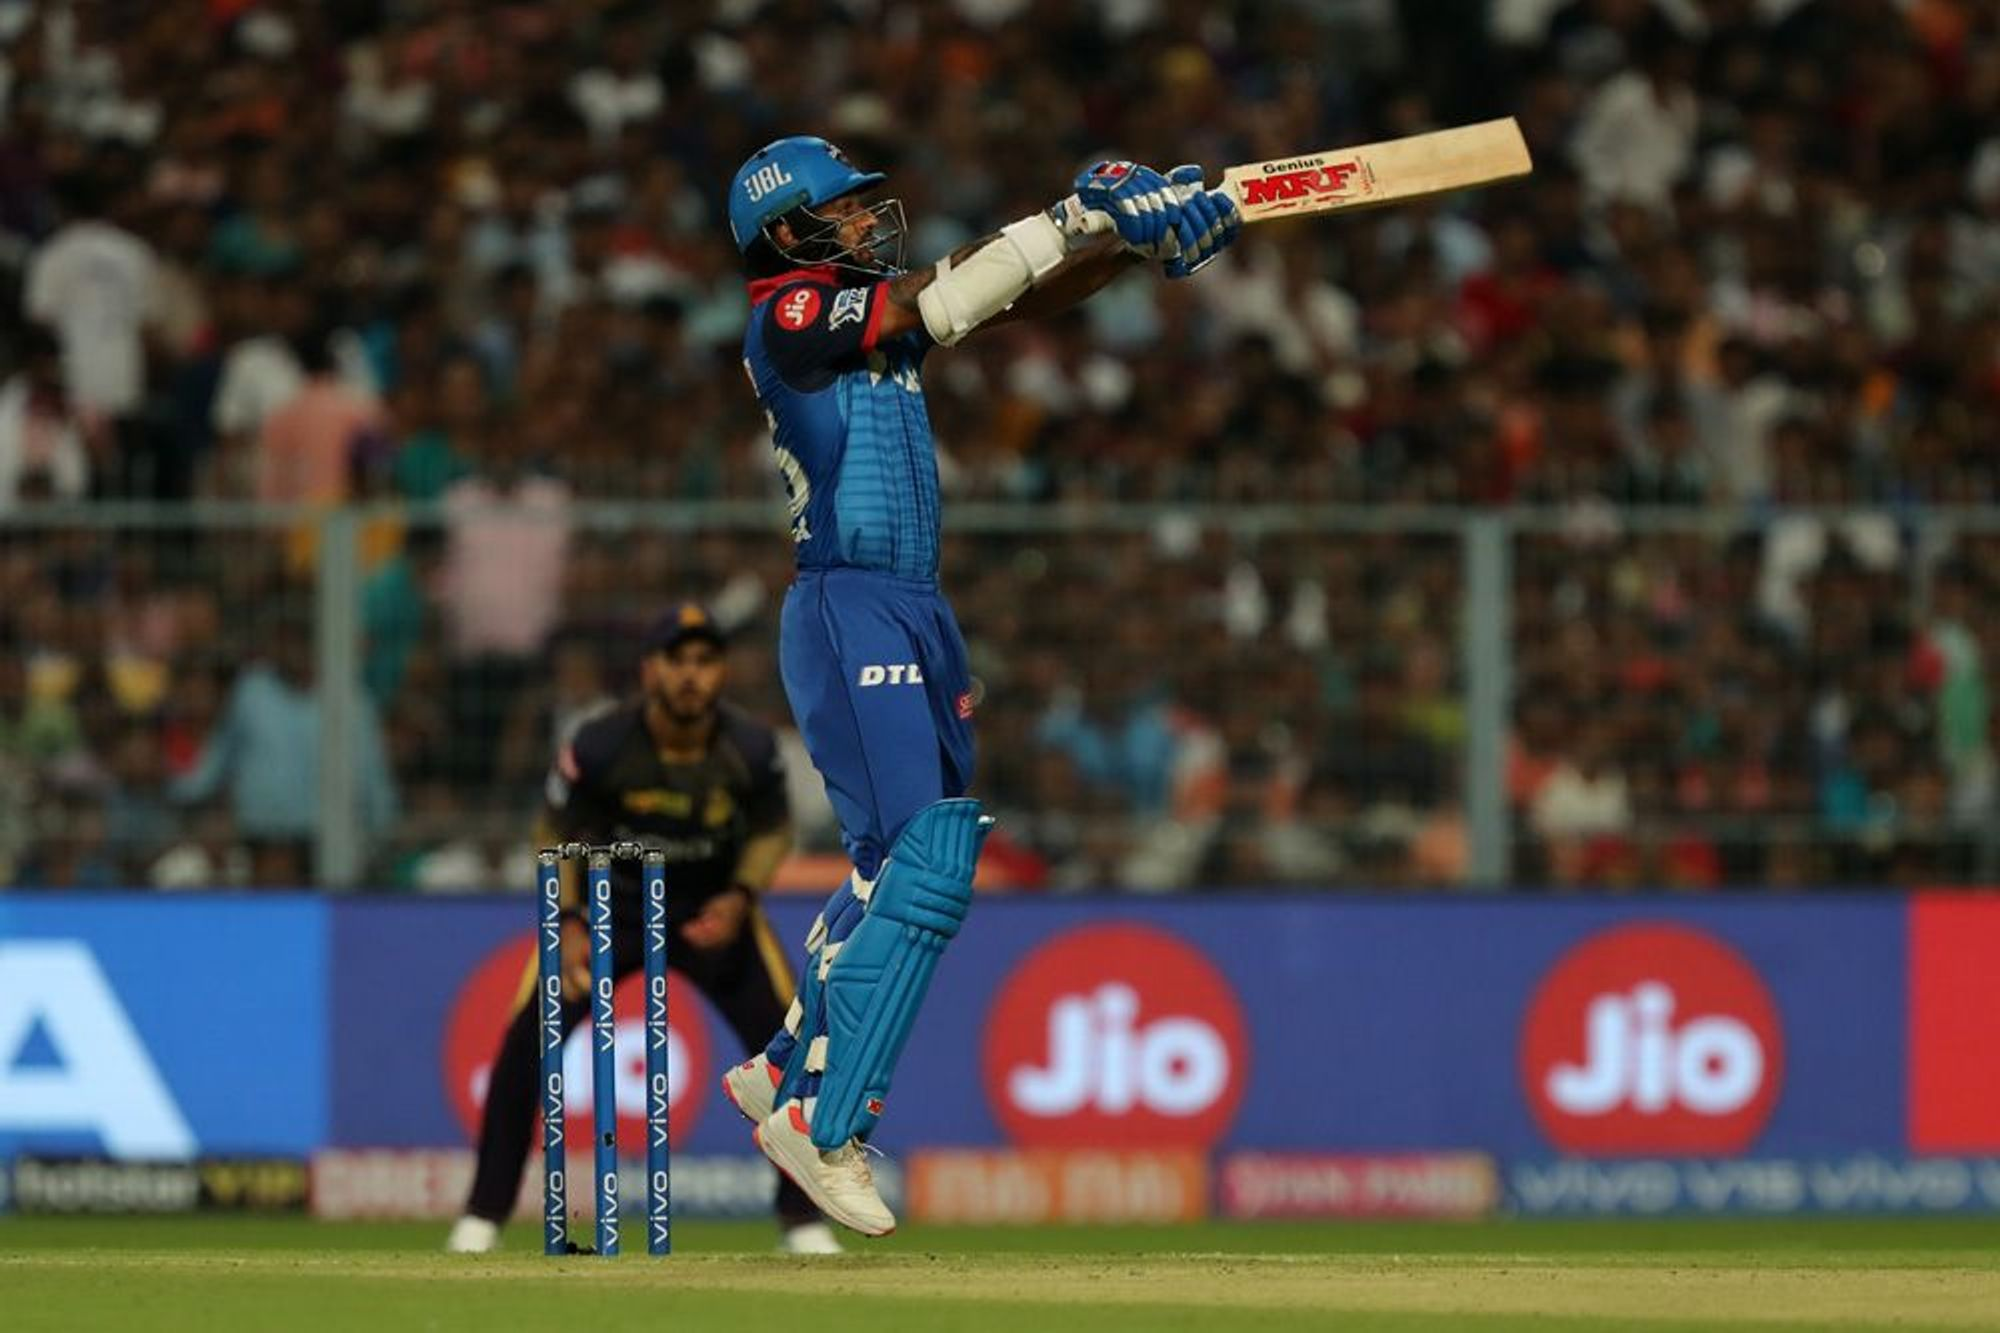 Shikhar Dhawan, Delhi Capitals, Kolkata Knight Riders, KKR, Sports, Cricket, NewsMobile, Mobile, News, India, IPL, 2019